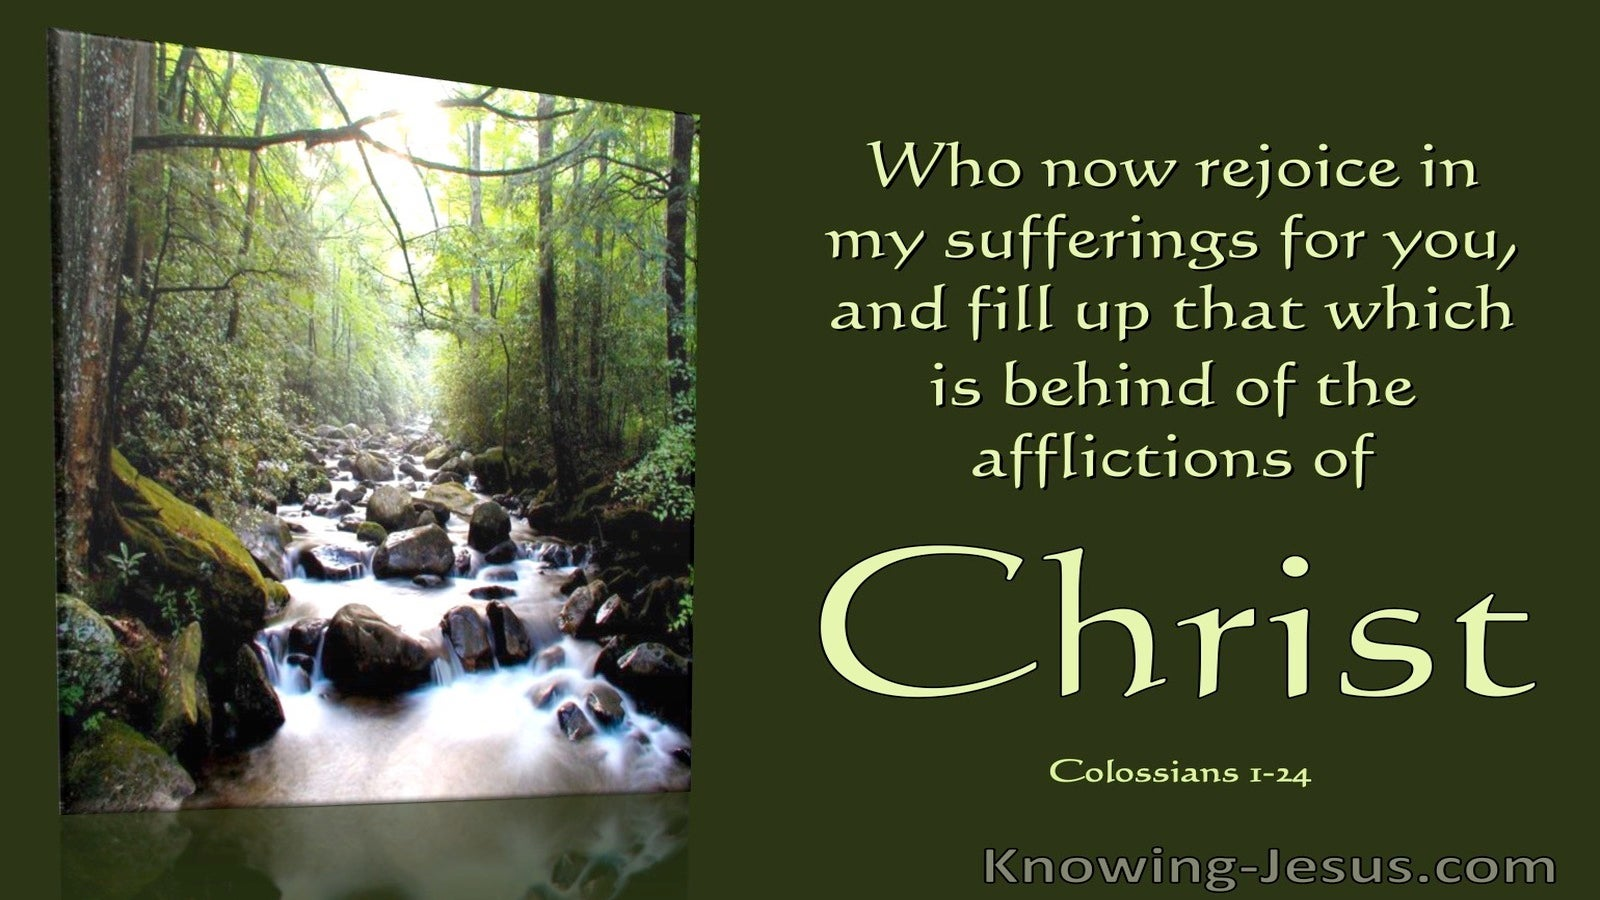 Colossians 1:24 Fill Up That Which Is Behind The Affliction Of Christ (utmost)11:09